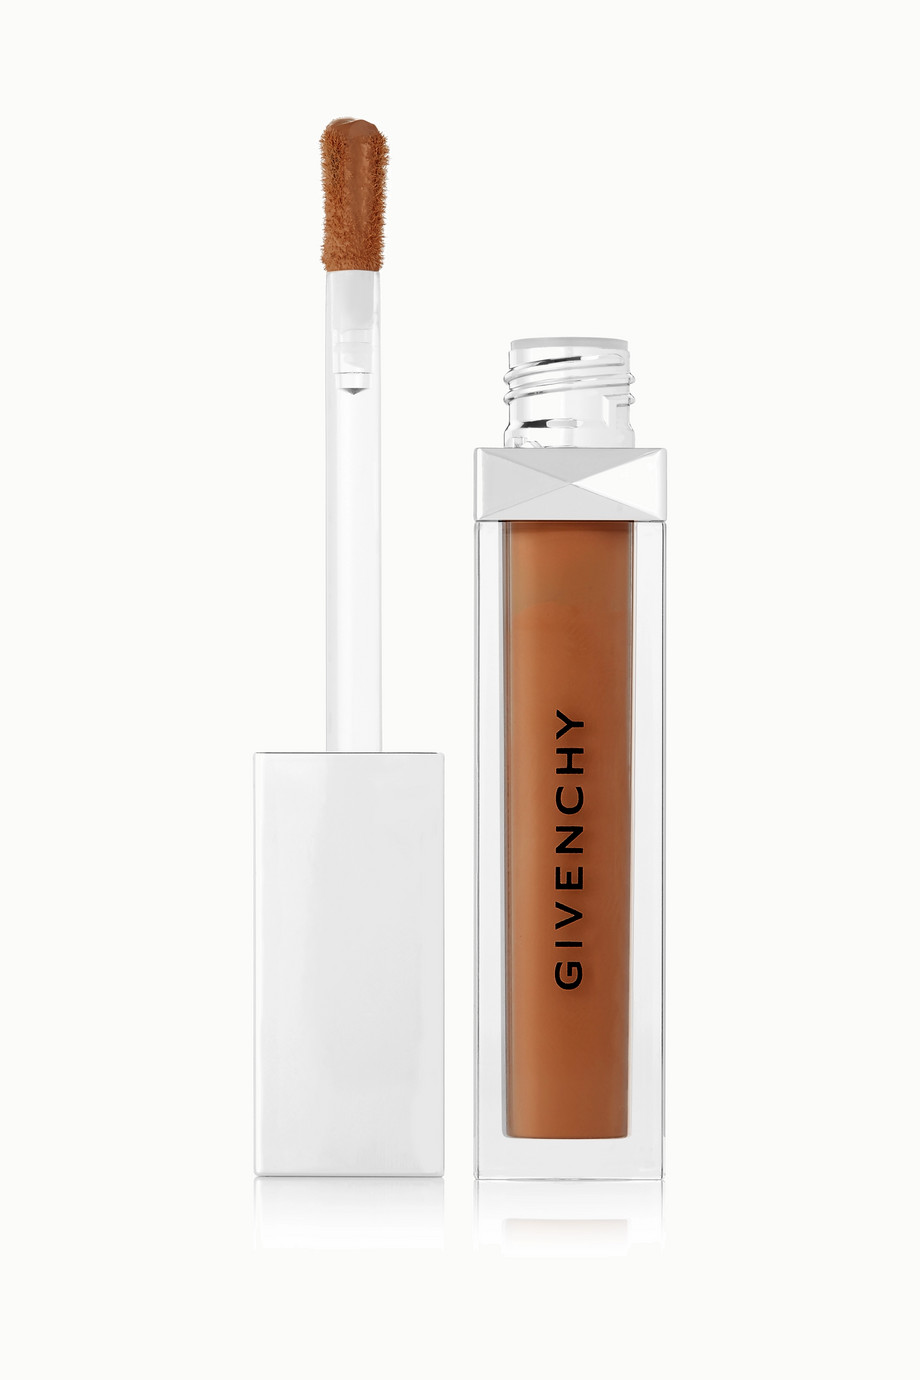 Givenchy Beauty Teint Couture Everwear Concealer - 30, 6ml